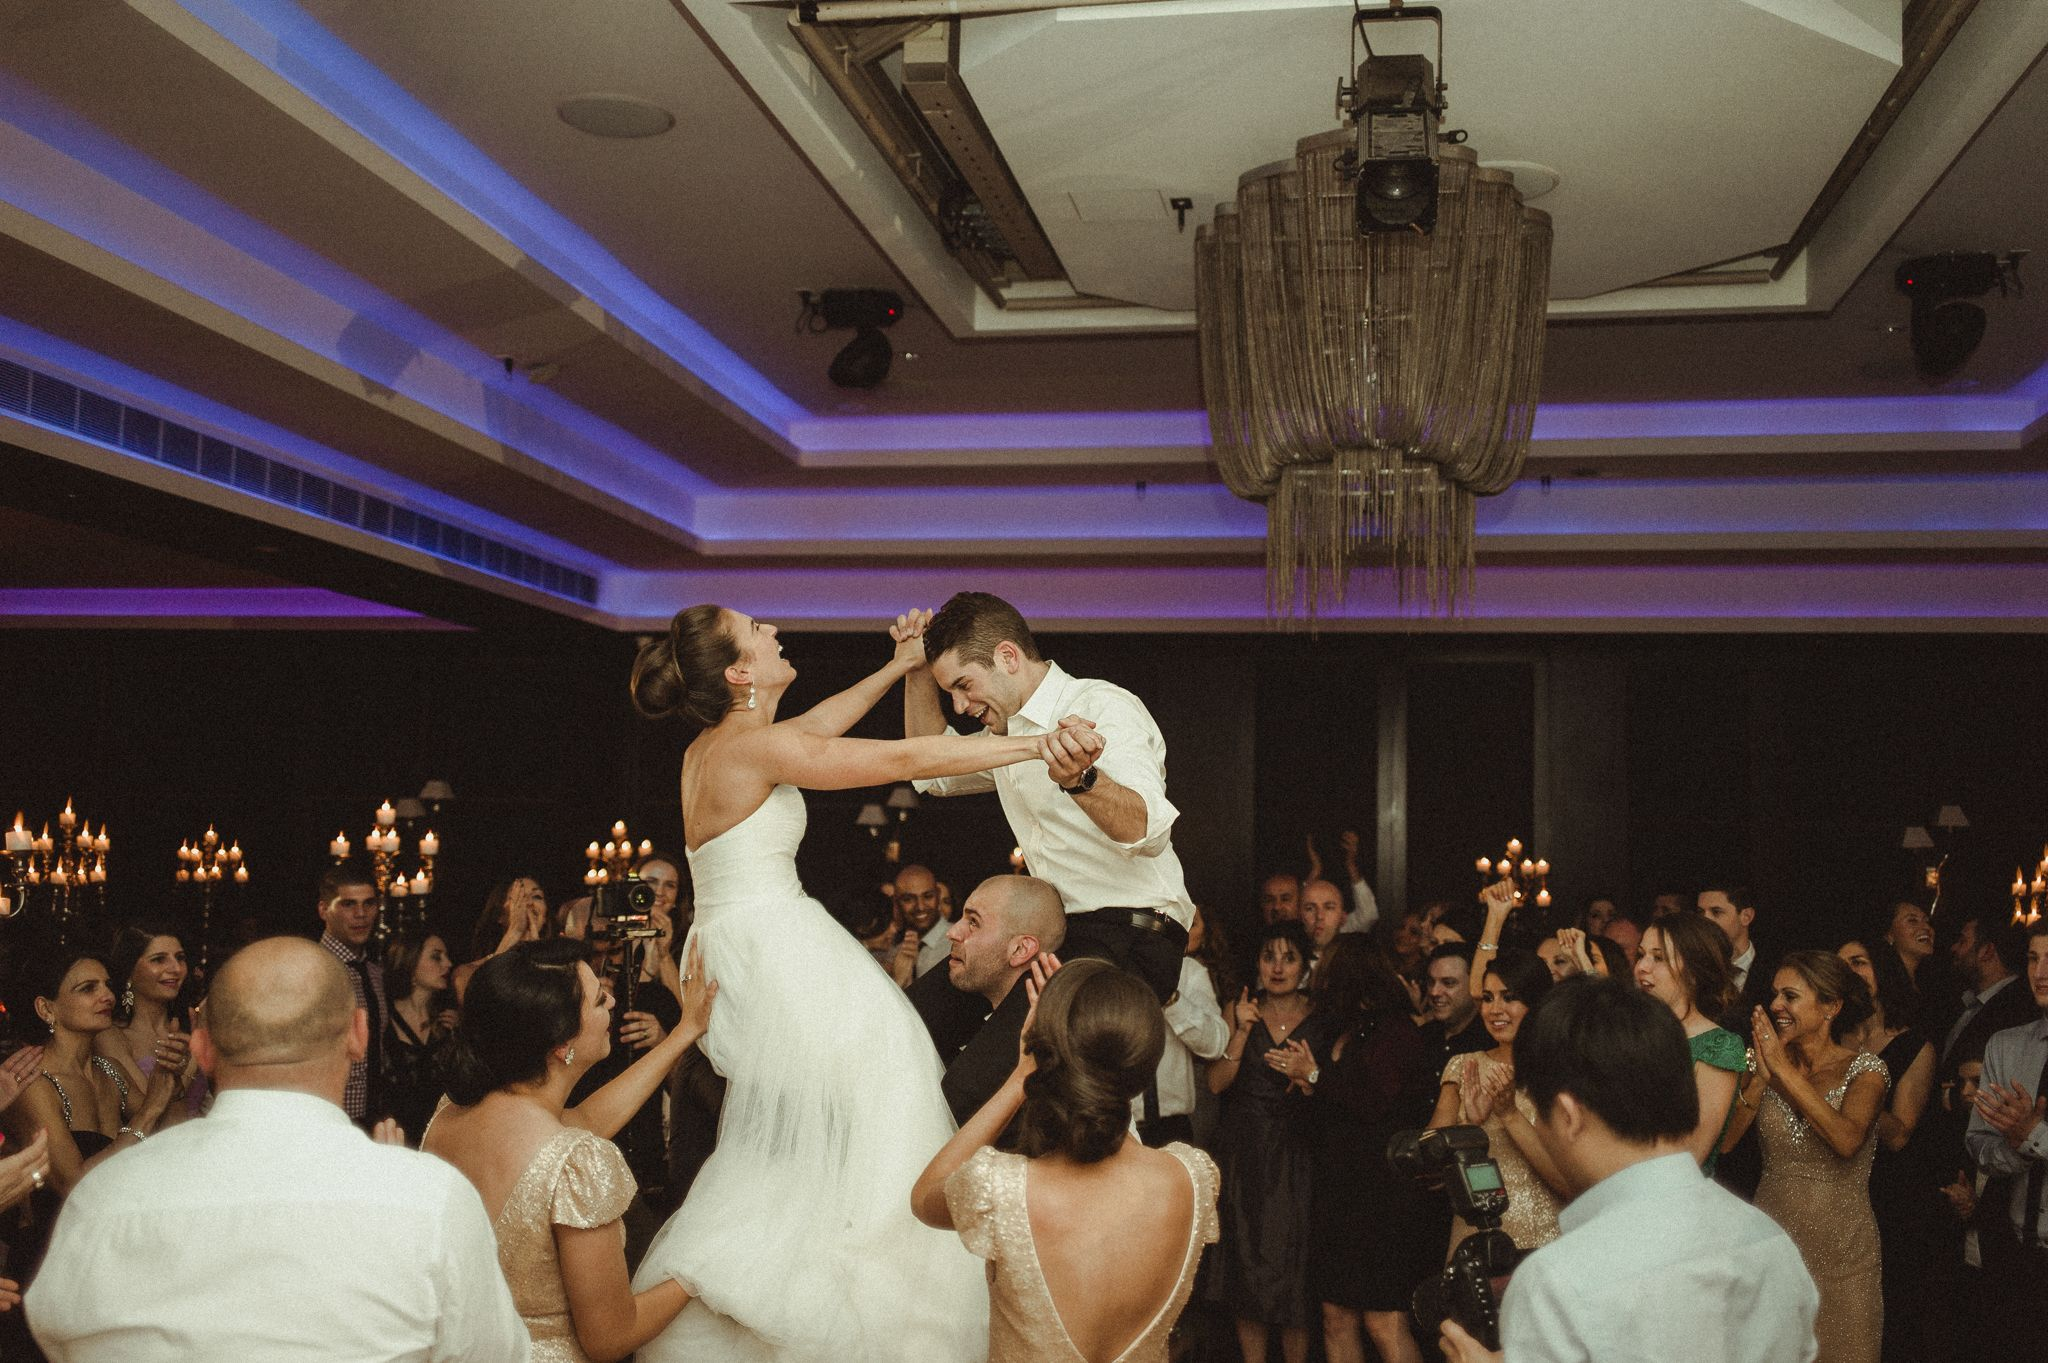 The Wedding Of This Greek Couple Has Perfect Amount Balance Between Sacred Traditions And Modern Glamour Festivities You Can Even Hear Music